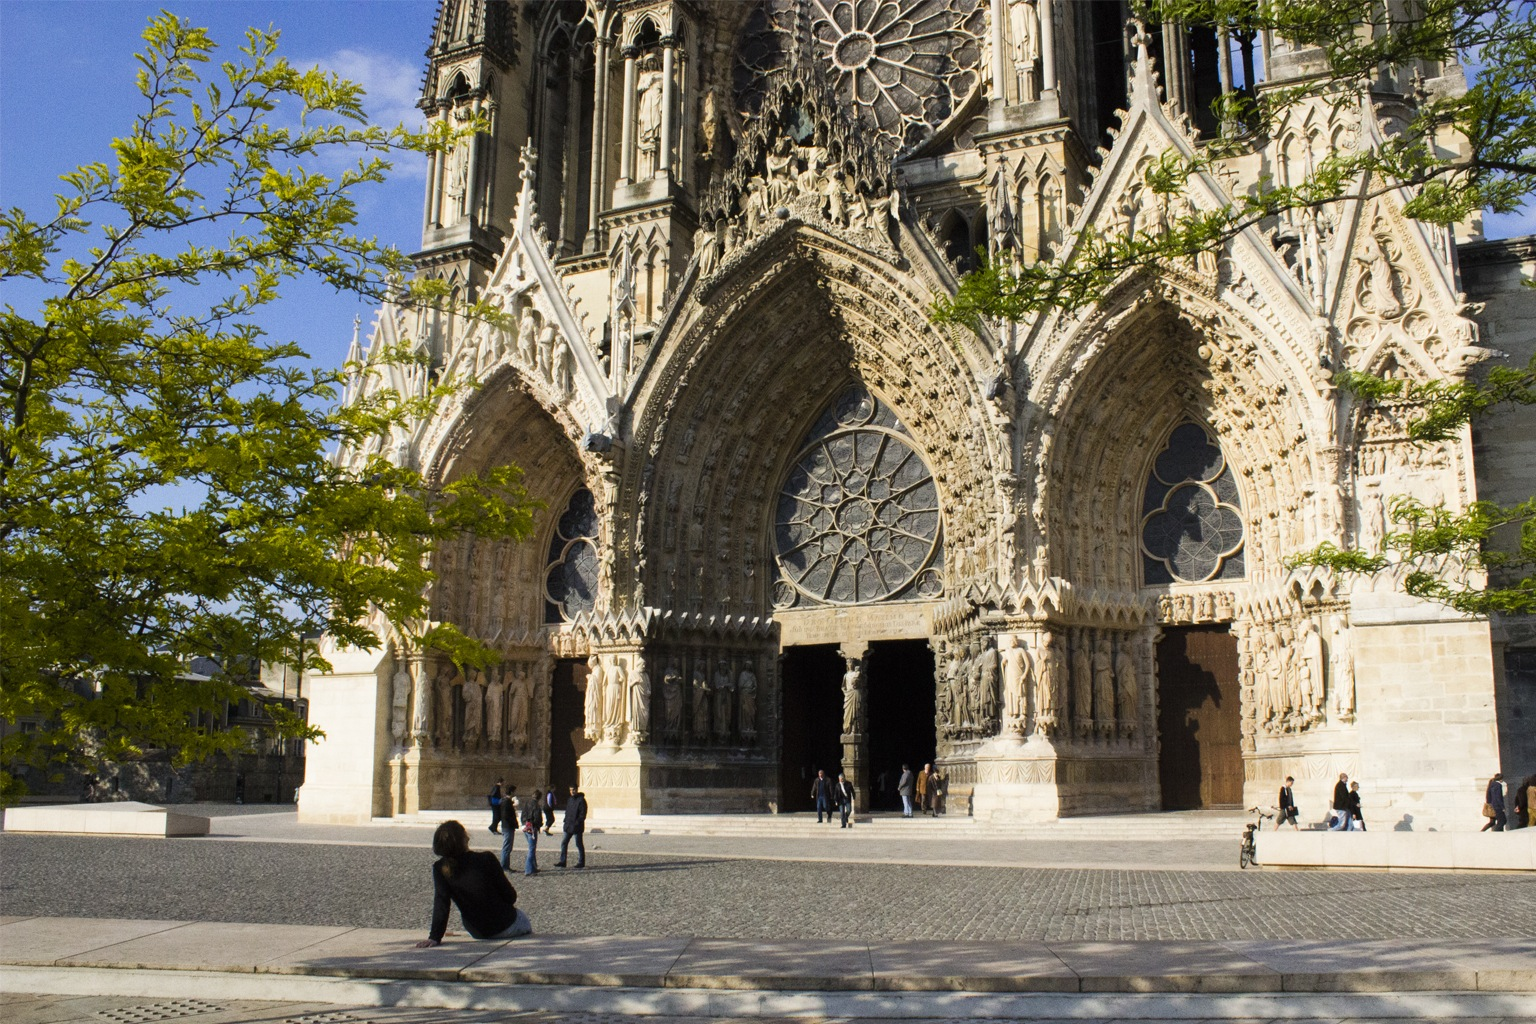 La cathédrale de Reims (Photo Carmen Moya)